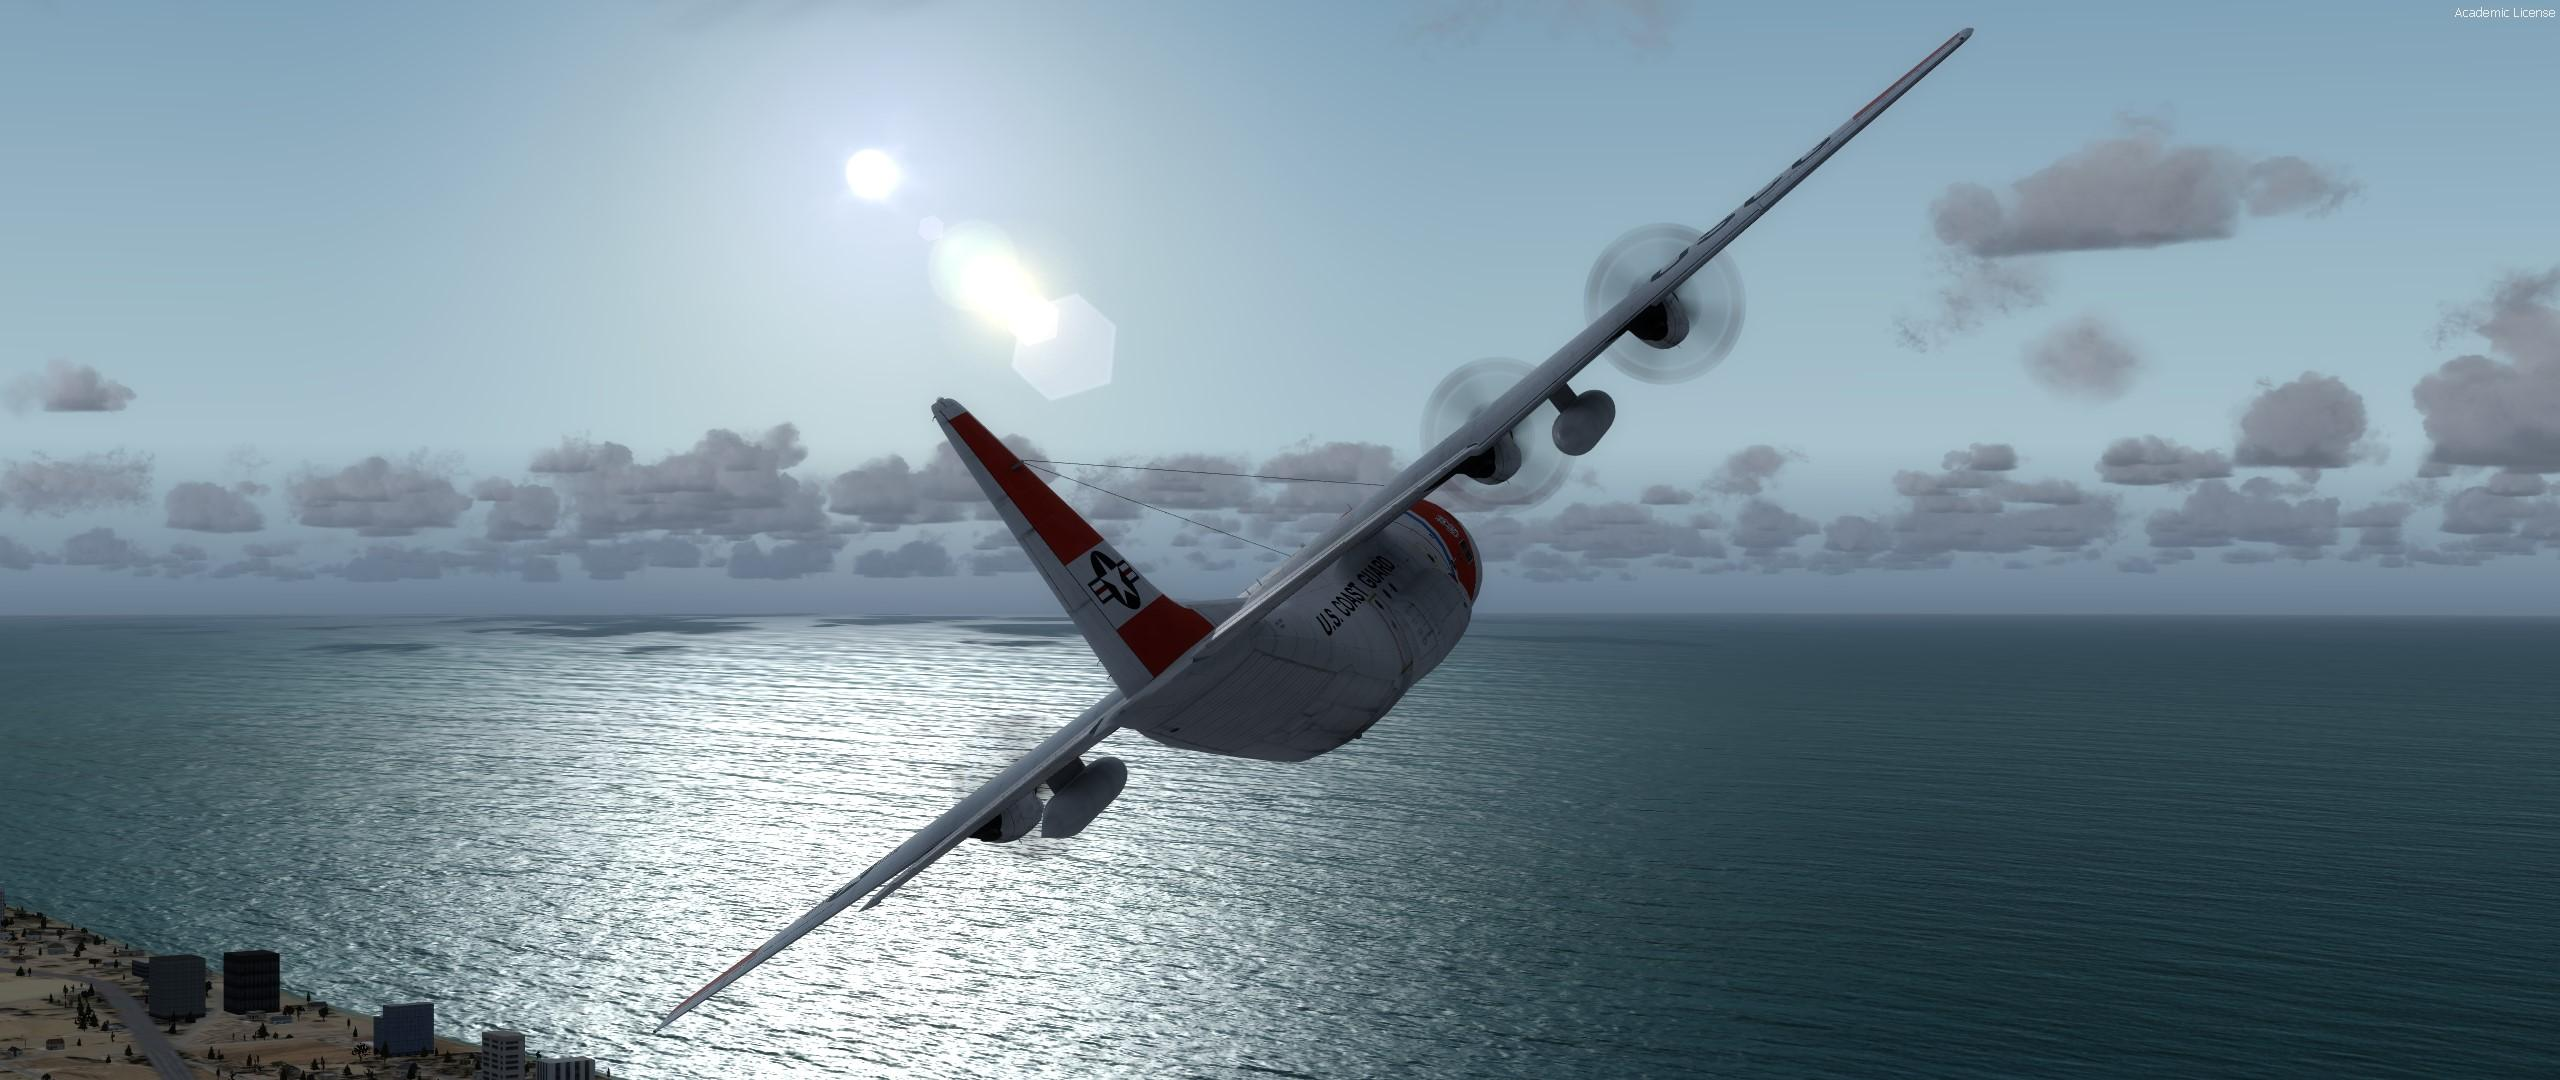 P3D 4 4 released! - General Discussion - no support requests here